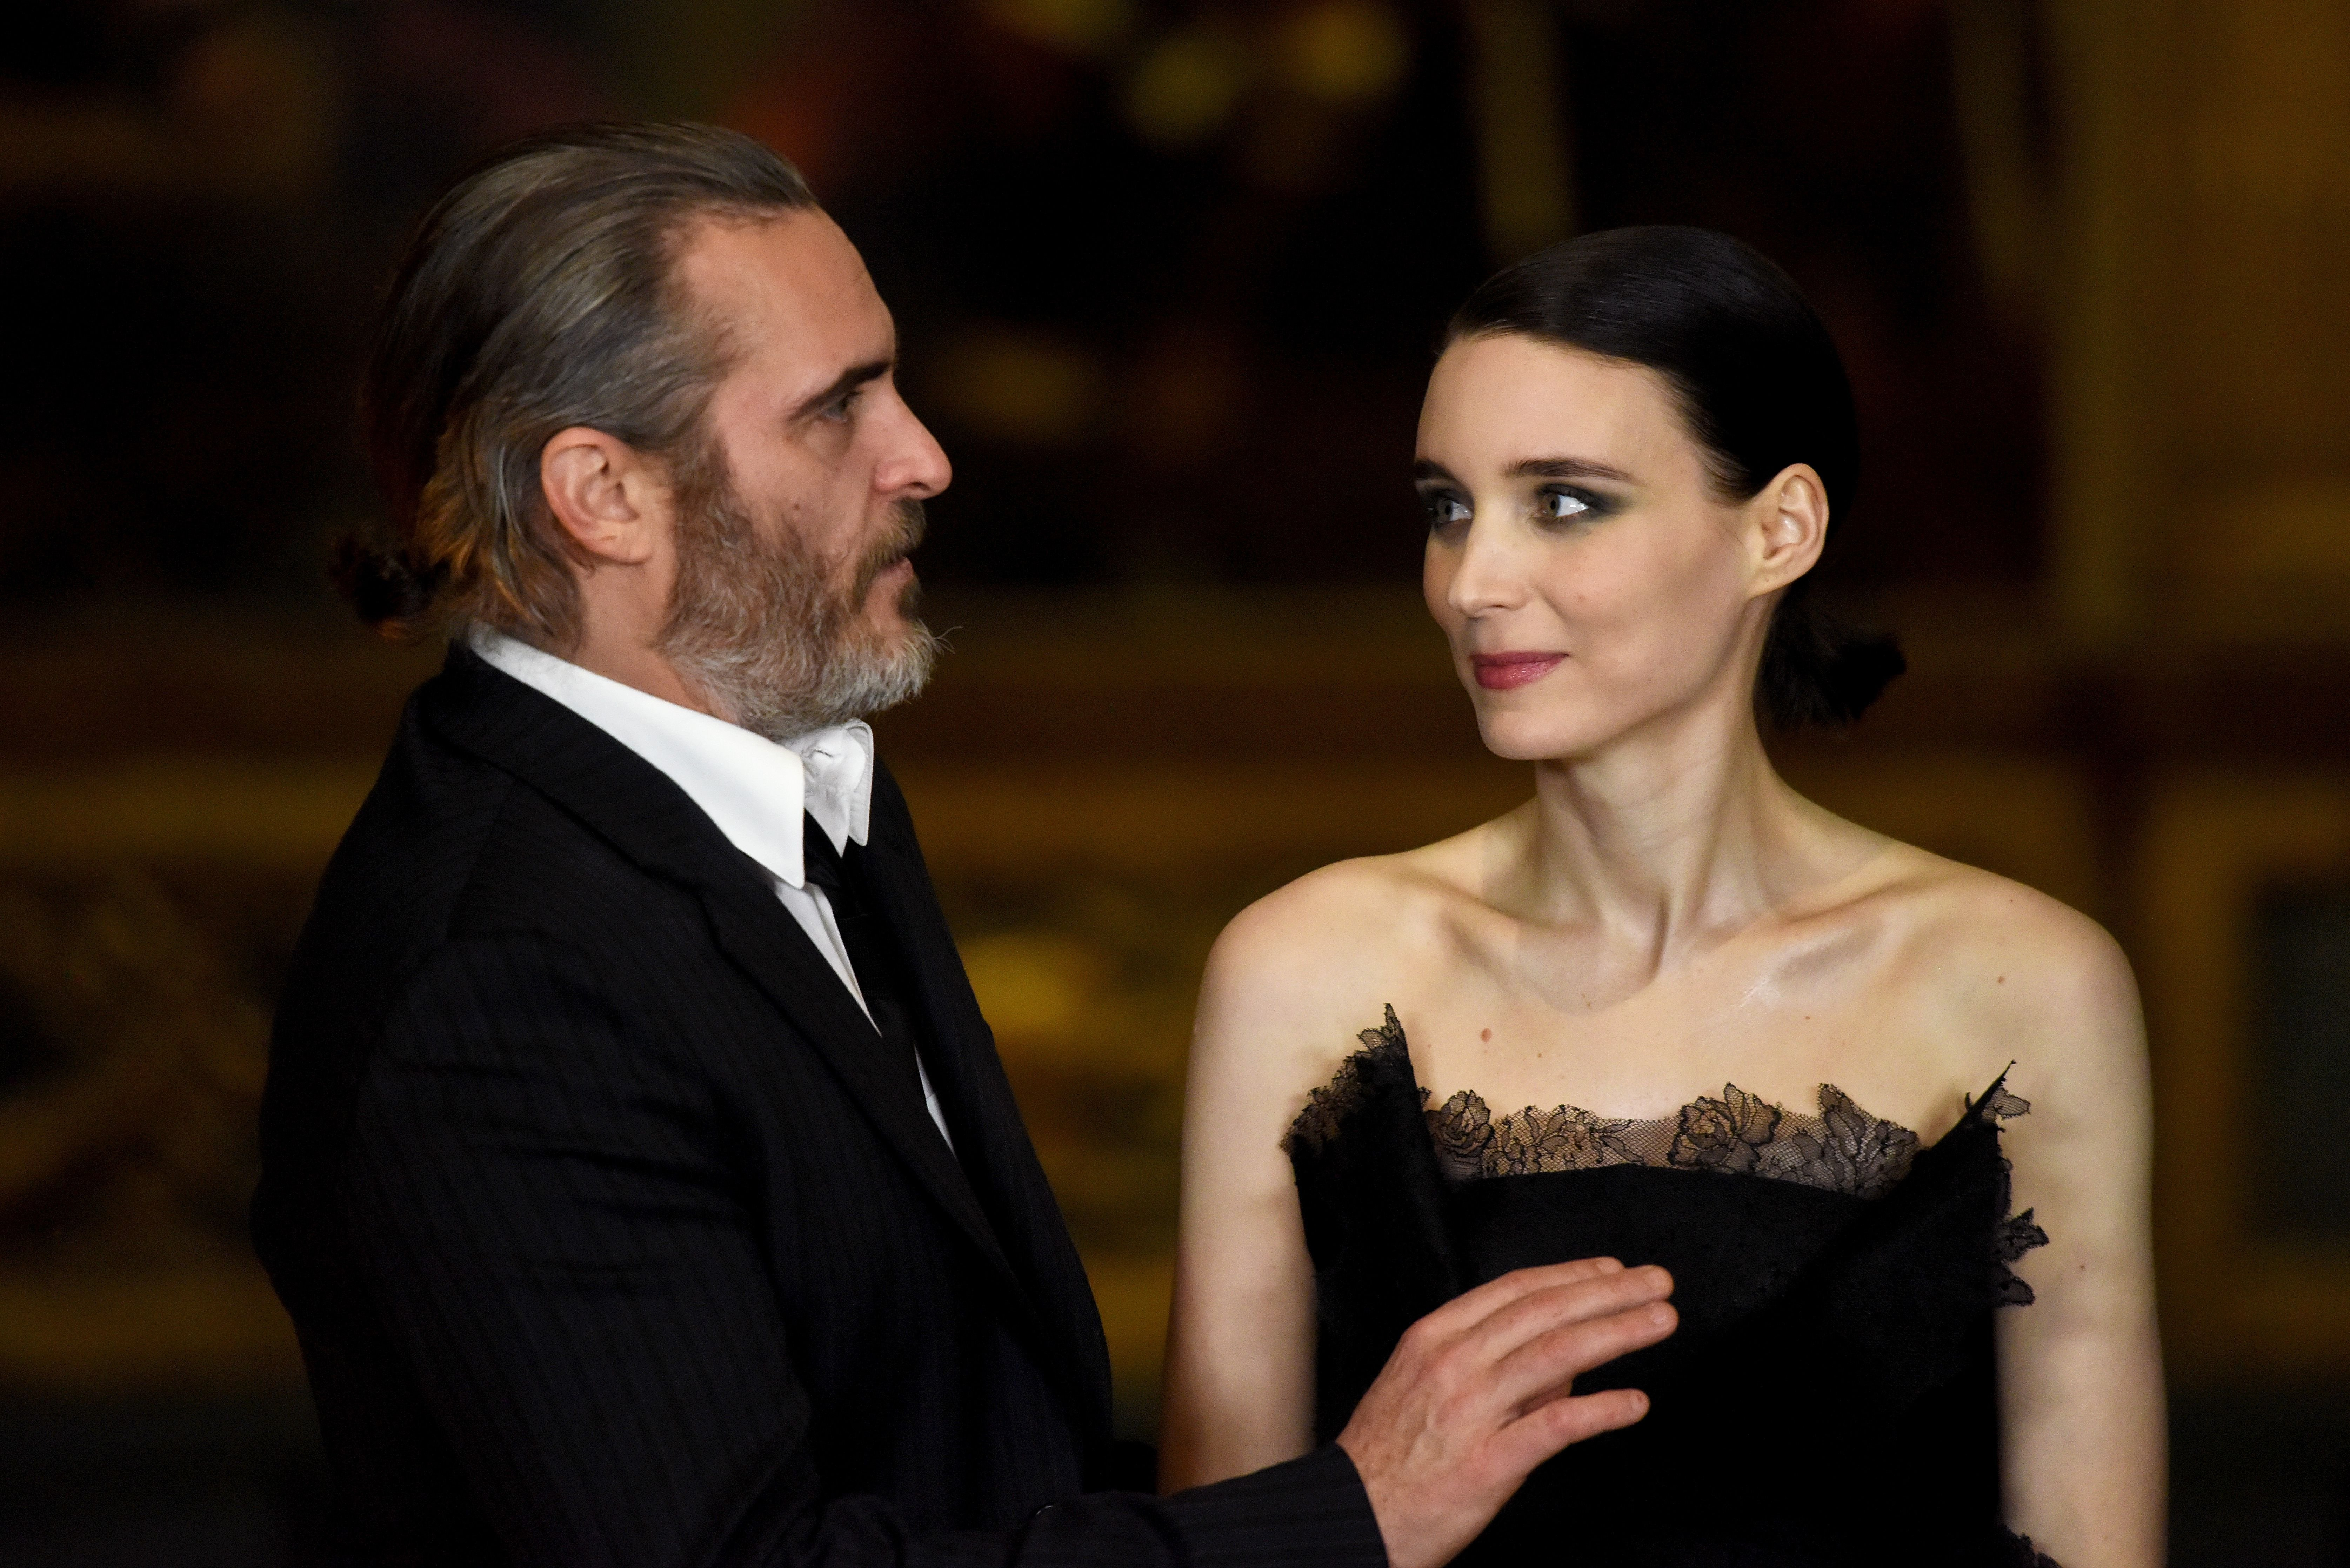 LONDON, ENGLAND - FEBRUARY 26: Joaquin Phoenix (L) and Rooney Mara attend the 'Mary Magdalene' special screening held at The National Gallery on February 26, 2018 in London, England. | Foto von: Dave J Hogan/Dave J Hogan/Getty Images